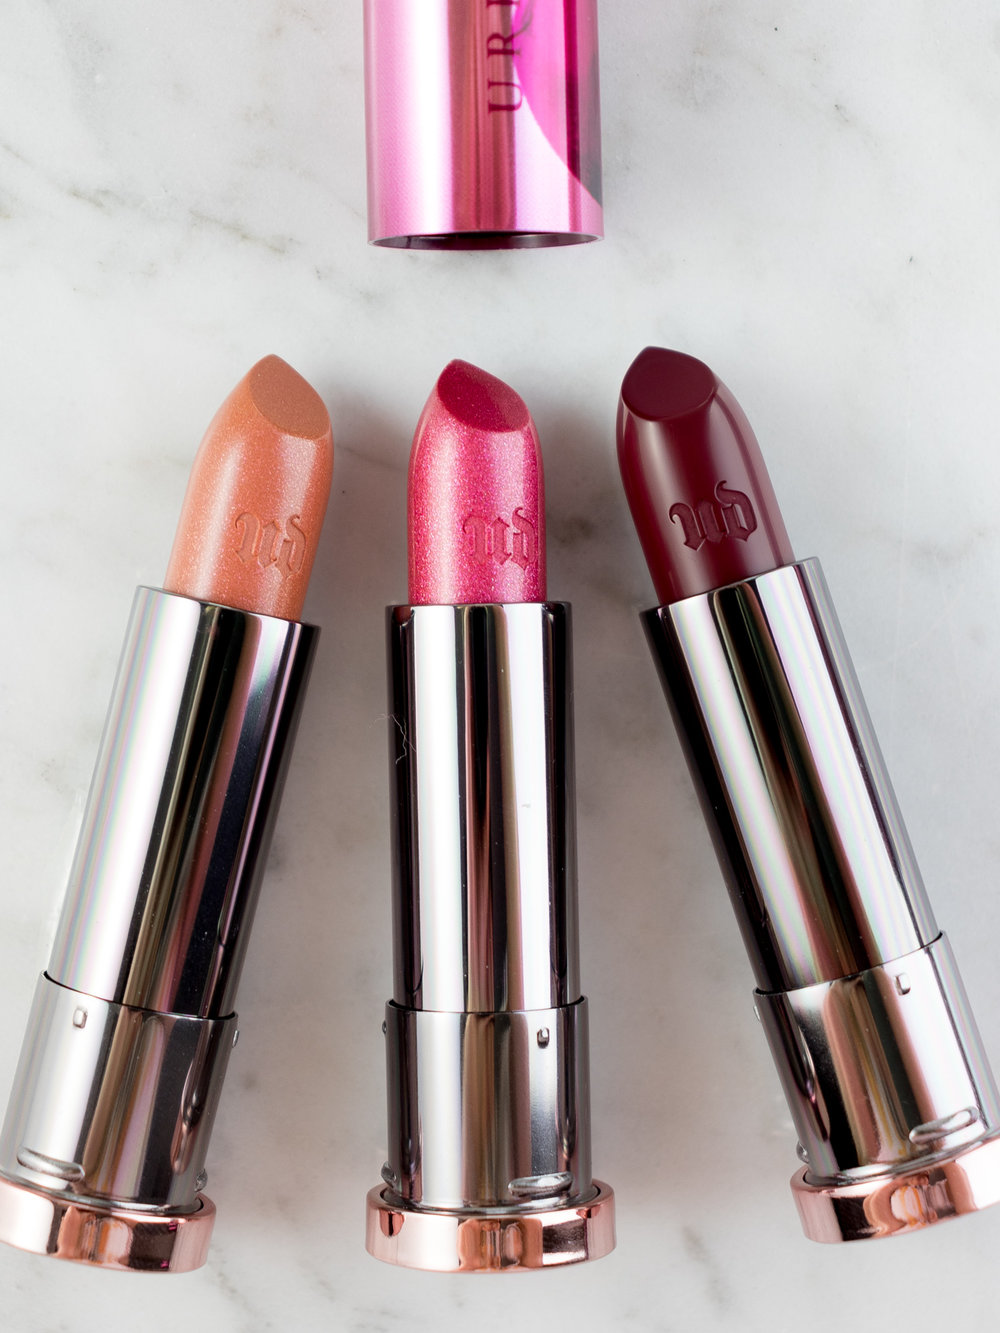 Urban Decay NAKED Cherry Lipsticks